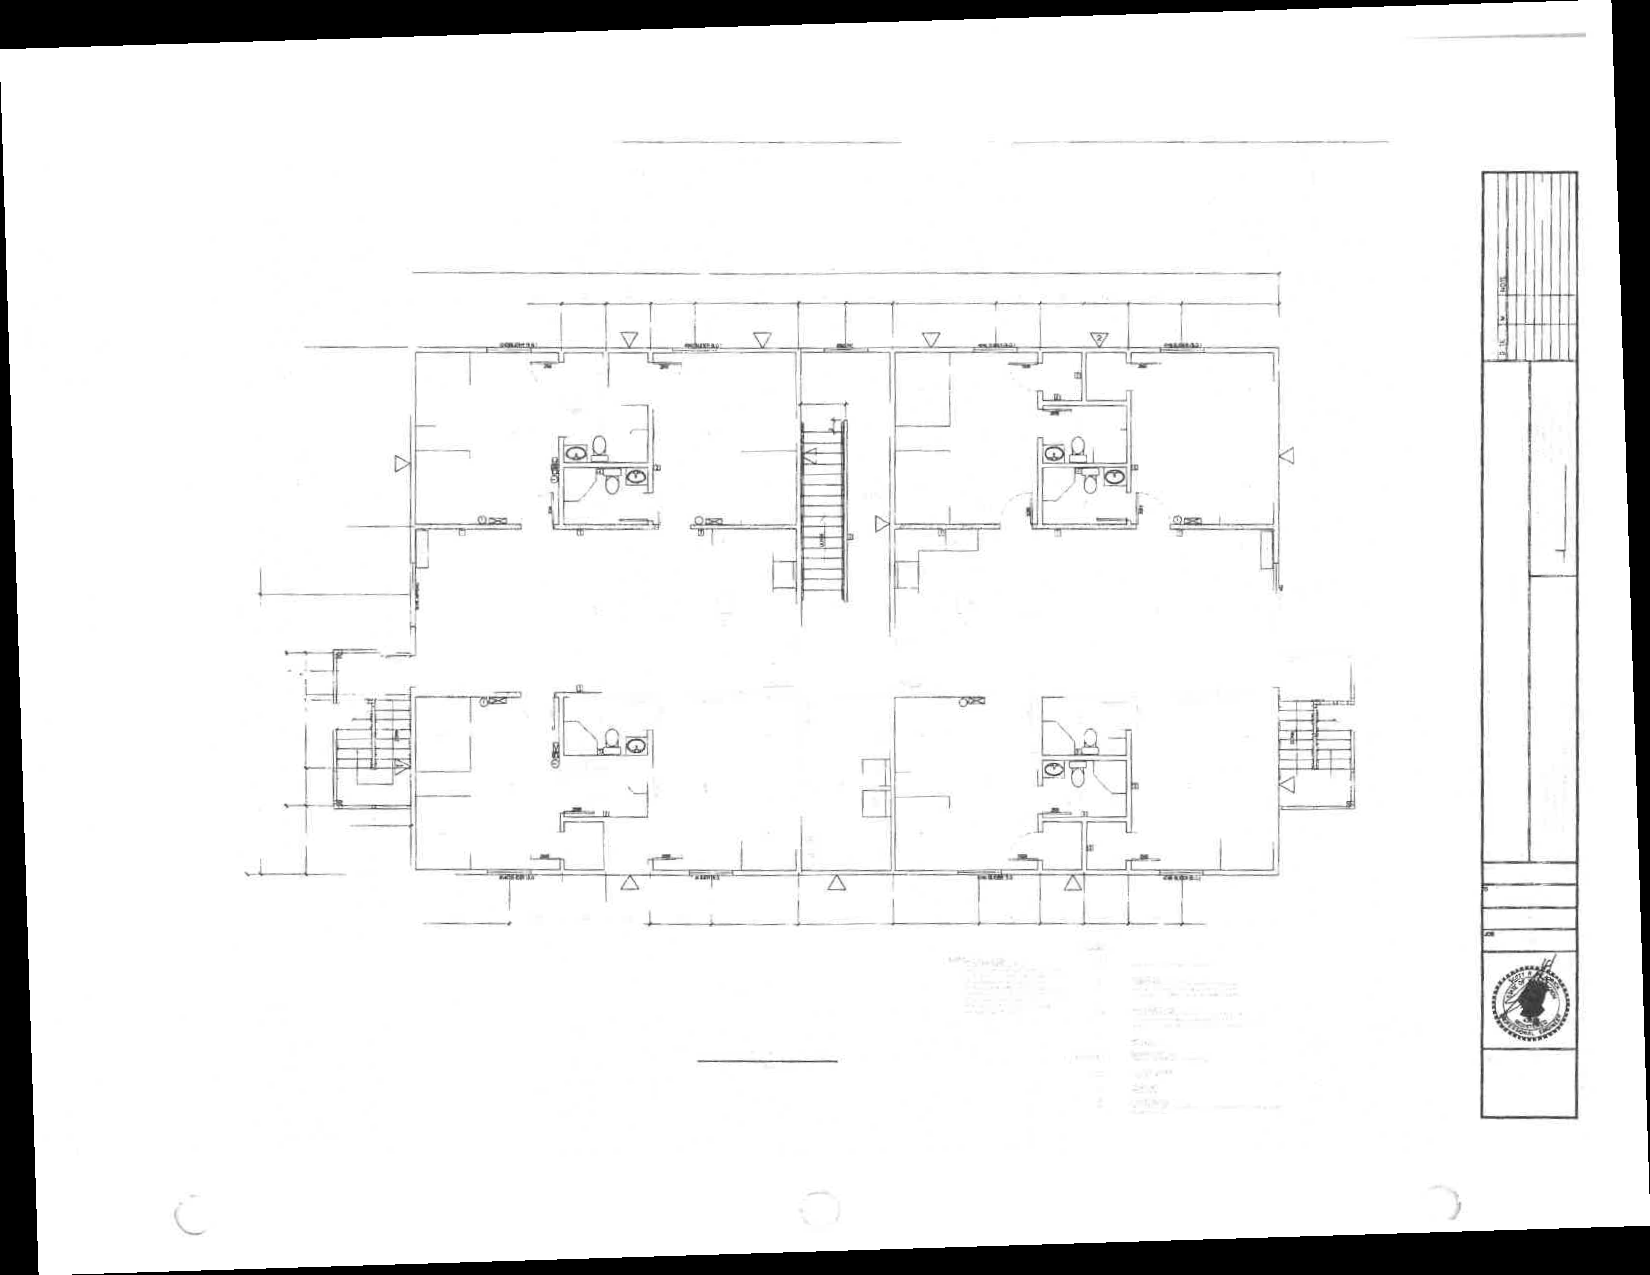 The floorplan of a typical suite, showing four bedrooms, each with a private bathroom and closet. The bedrooms share a common kitchen and living room.